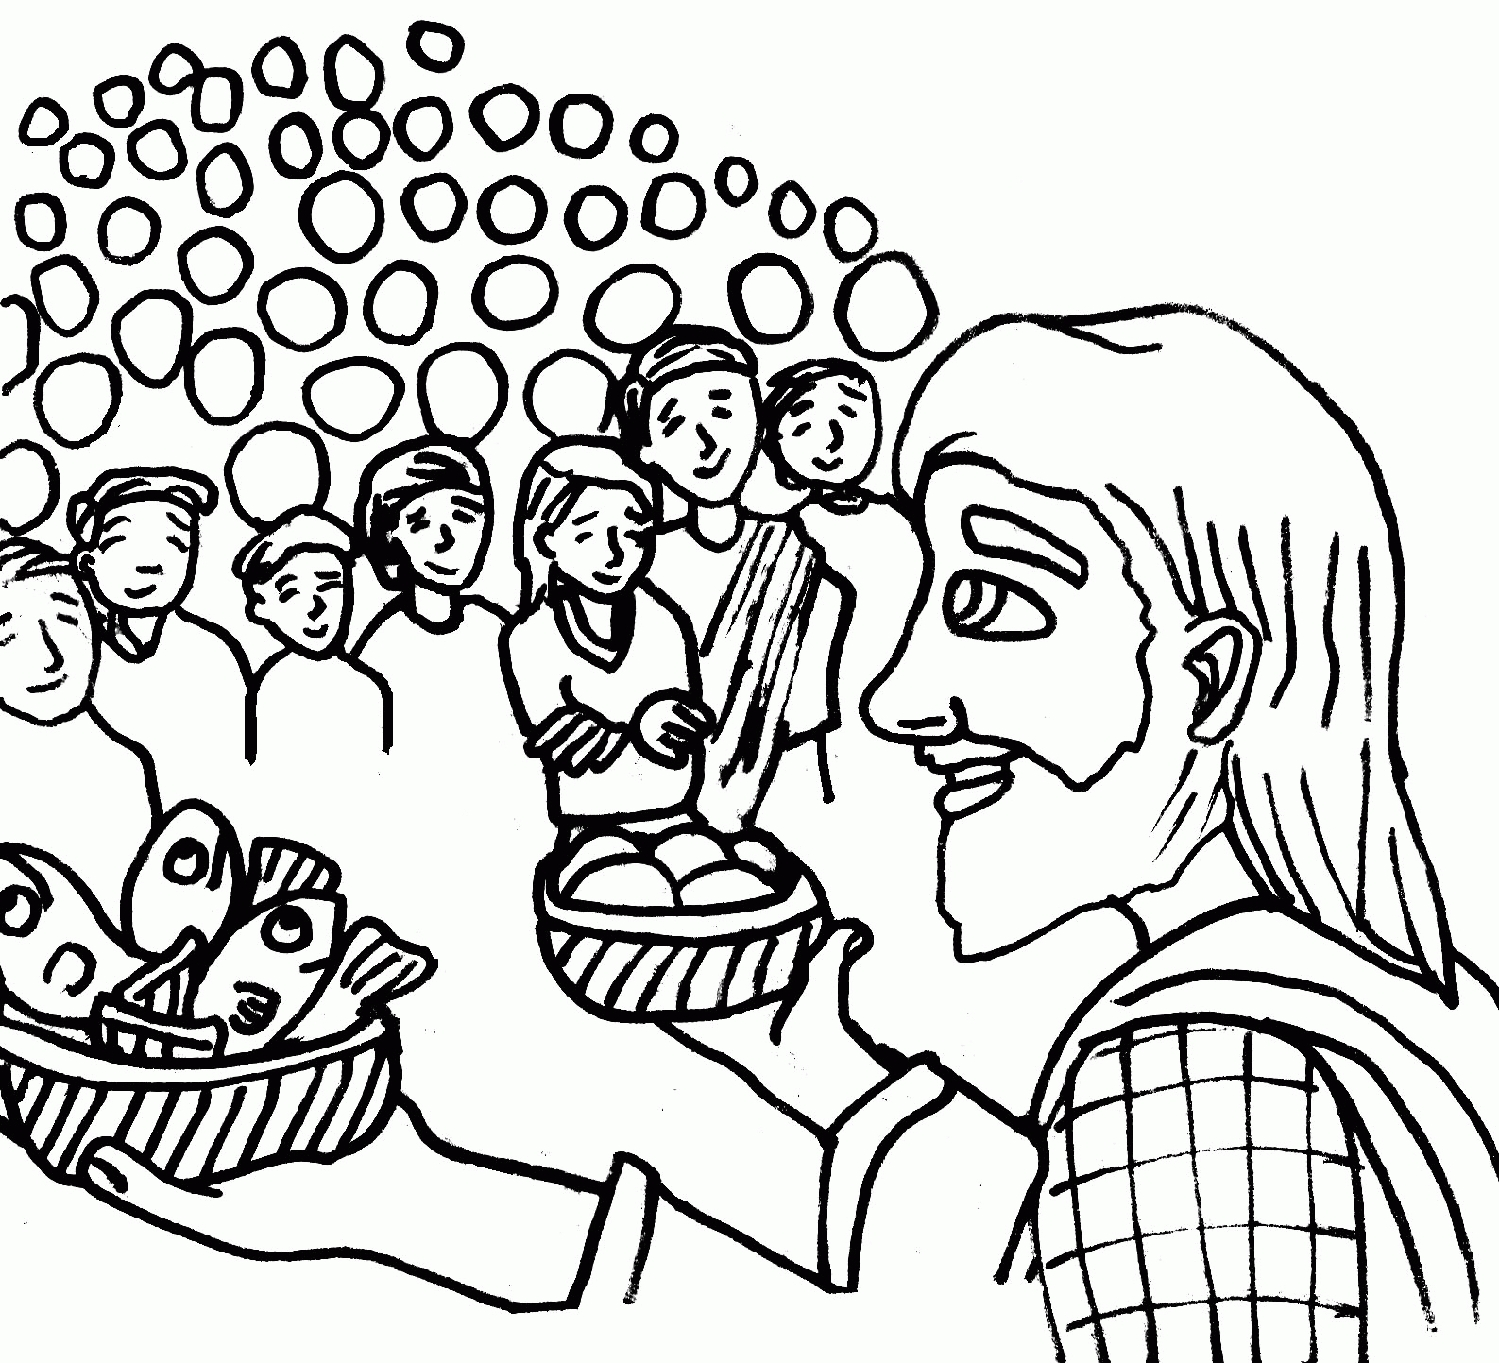 jesus feeds 5000 coloring page - jesus feeds 5000 coloring page